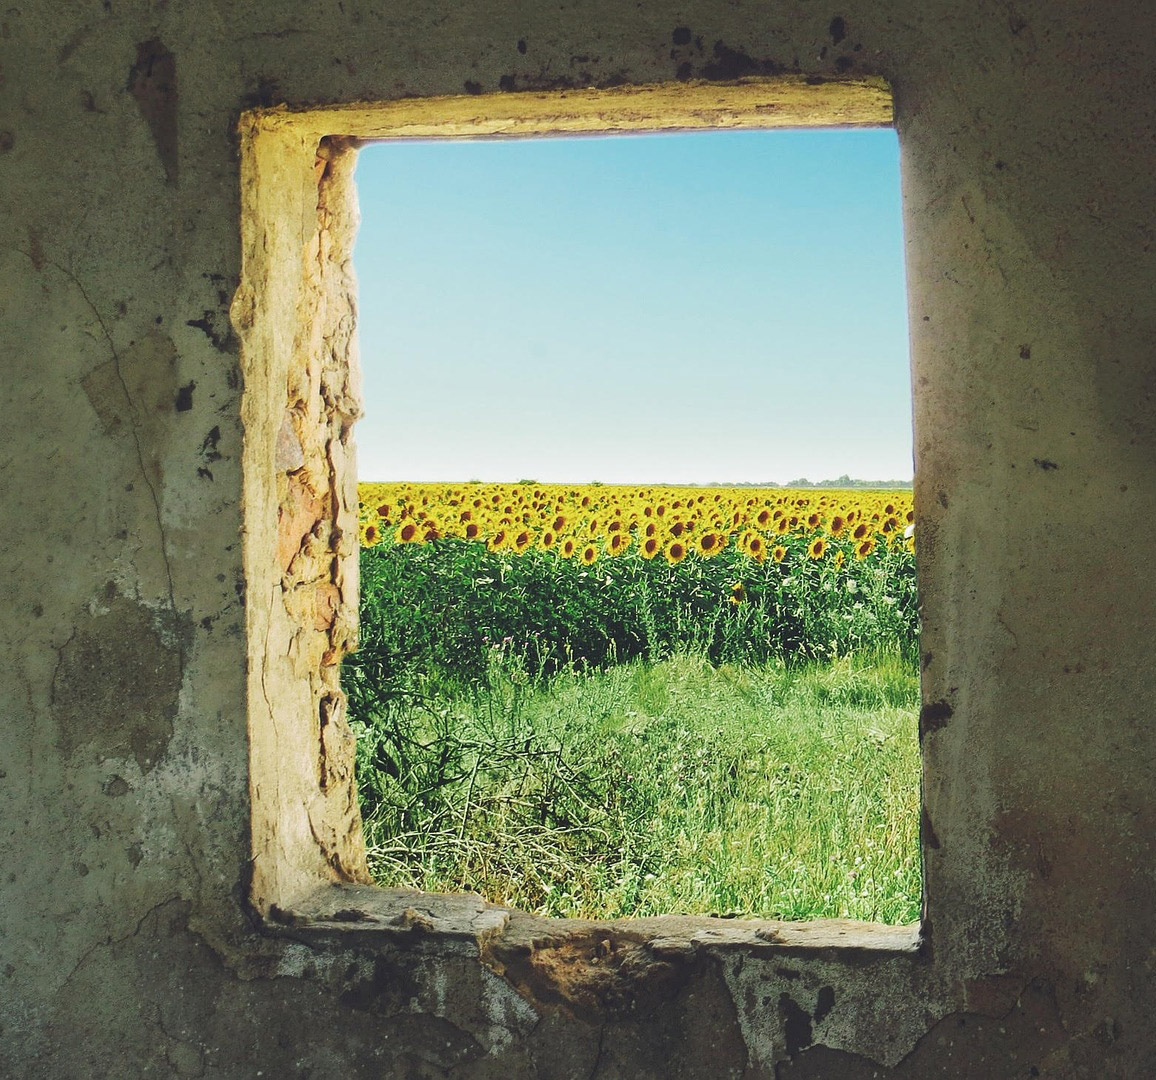 Peering through a empty square of a window in a gritty cement wall in the Ukraine to view a field full of sunflowers.